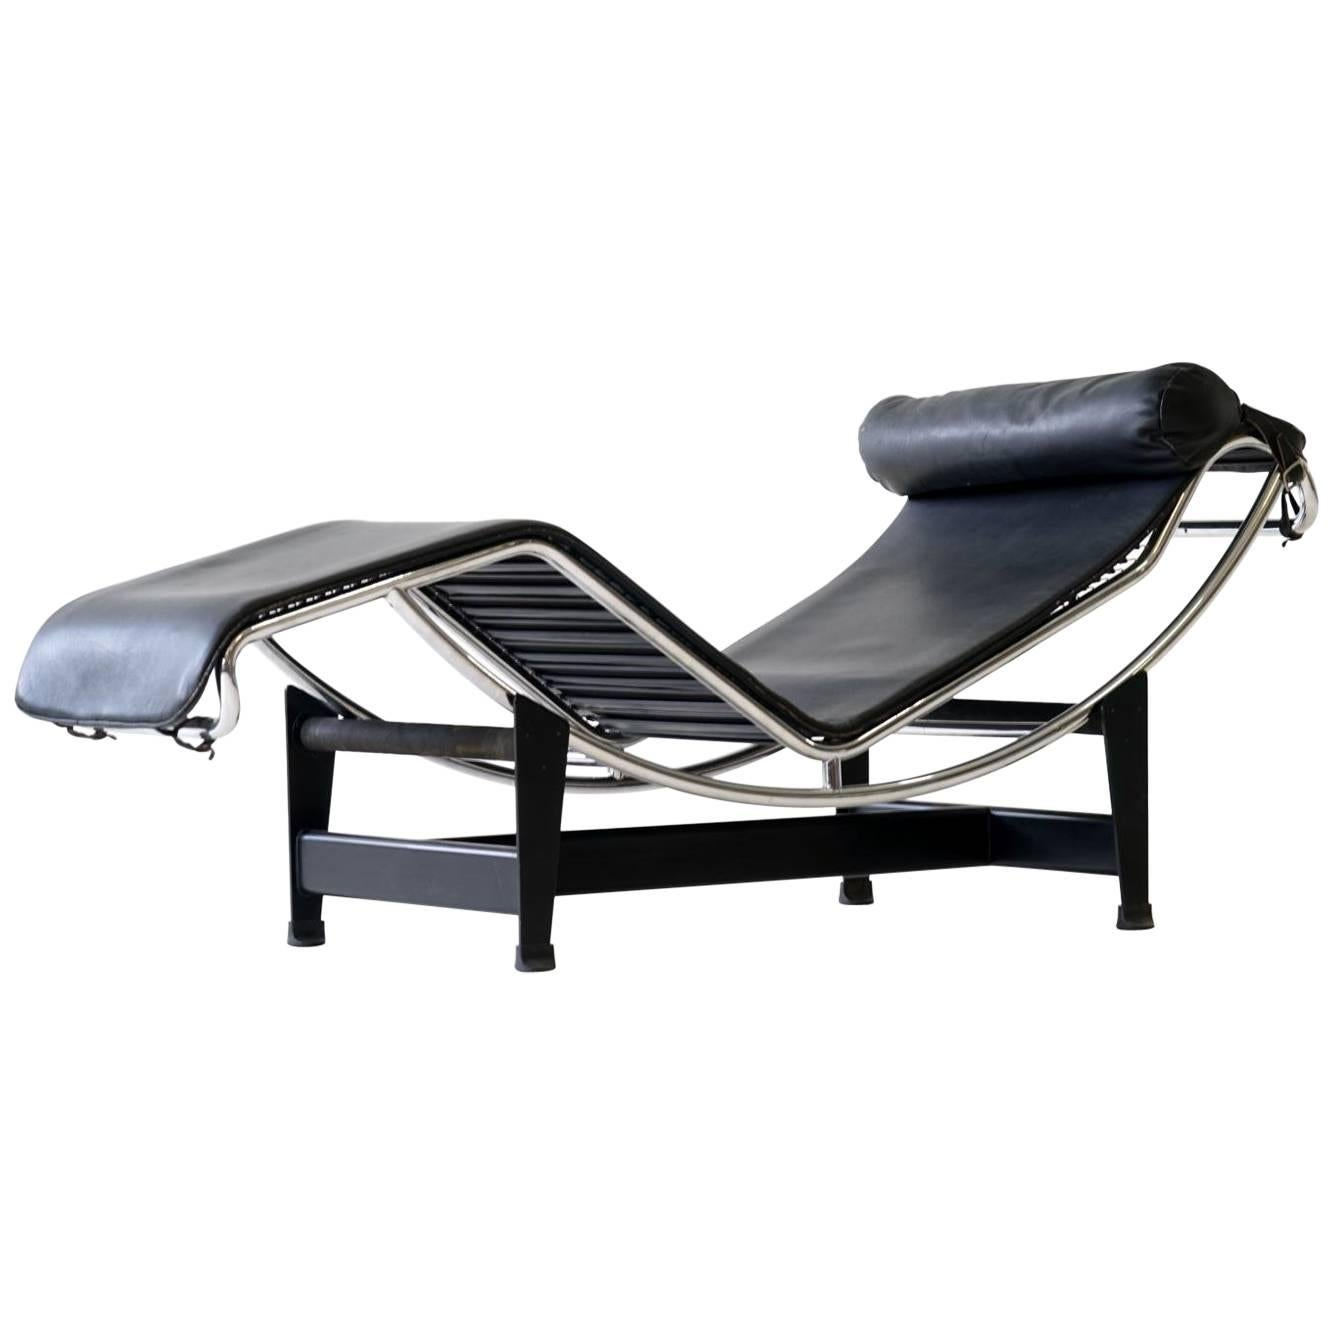 Early LC4 Le Corbusier Chaise Longue Cassina No. 8XXX 1  sc 1 st  1stDibs : le corbusier chaise lounge chair - Sectionals, Sofas & Couches